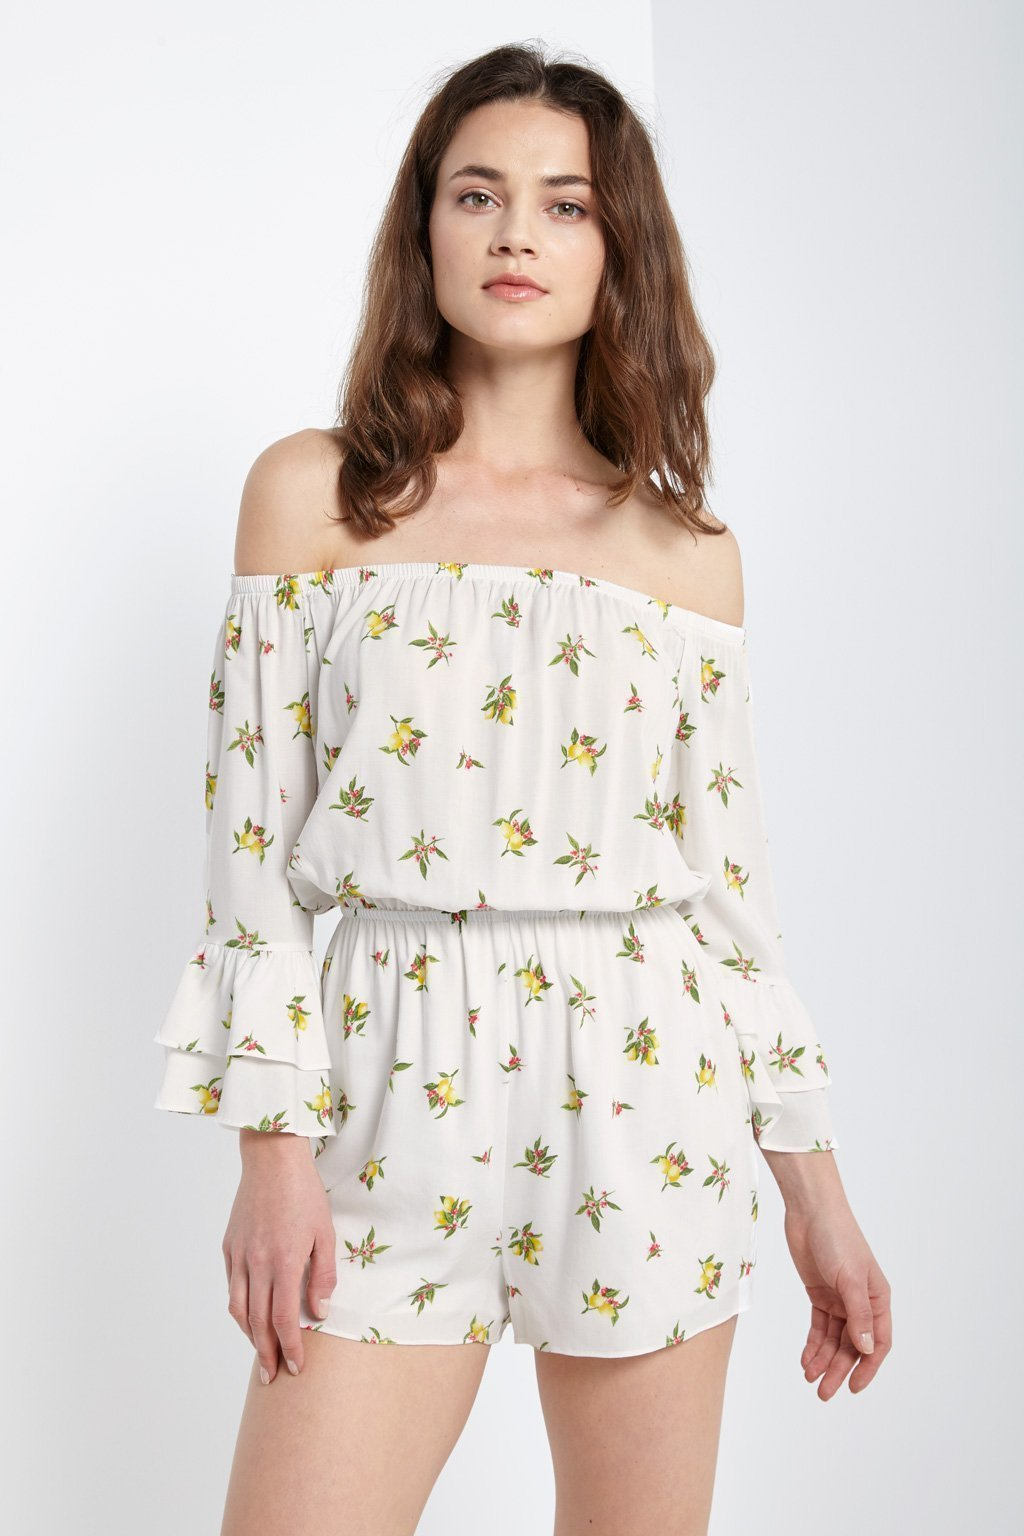 Poshsquare Romper Lemon Printed Off the Shoulder Romper